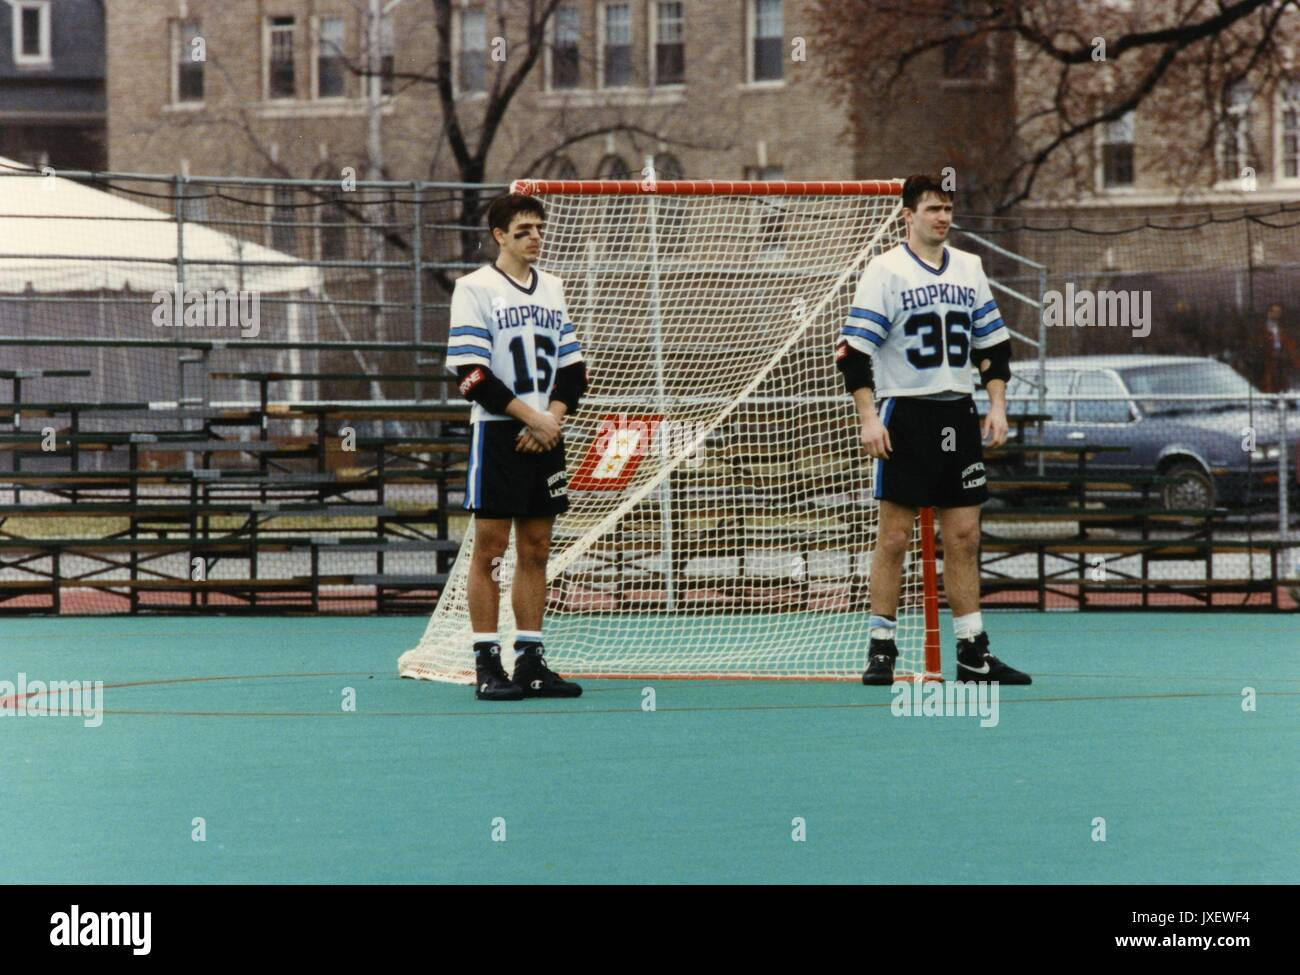 Lacrosse, Wills, Jeff, Lukacz, Brian Jeff Wills (#16) and Brian Lukacz (#36), the 1992 captains of the lacrosse - Stock Image